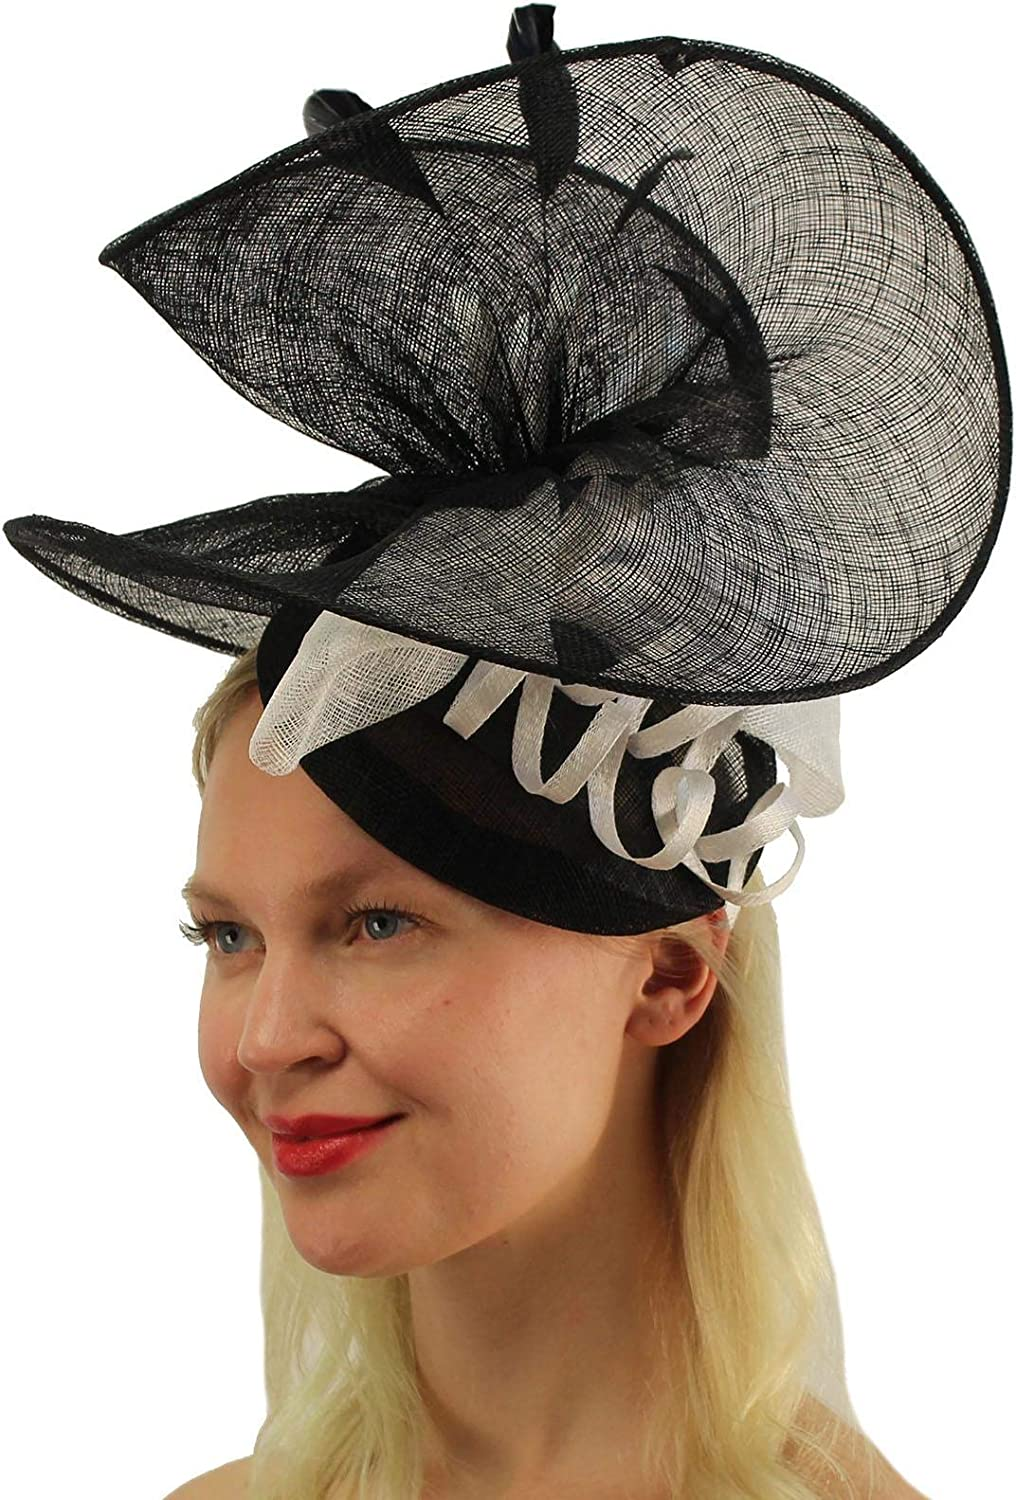 SOMETHING SPECIAL Fancy Sinamay Feathers Fascinators Headband Bridal Cocktail Derby Cap Hat